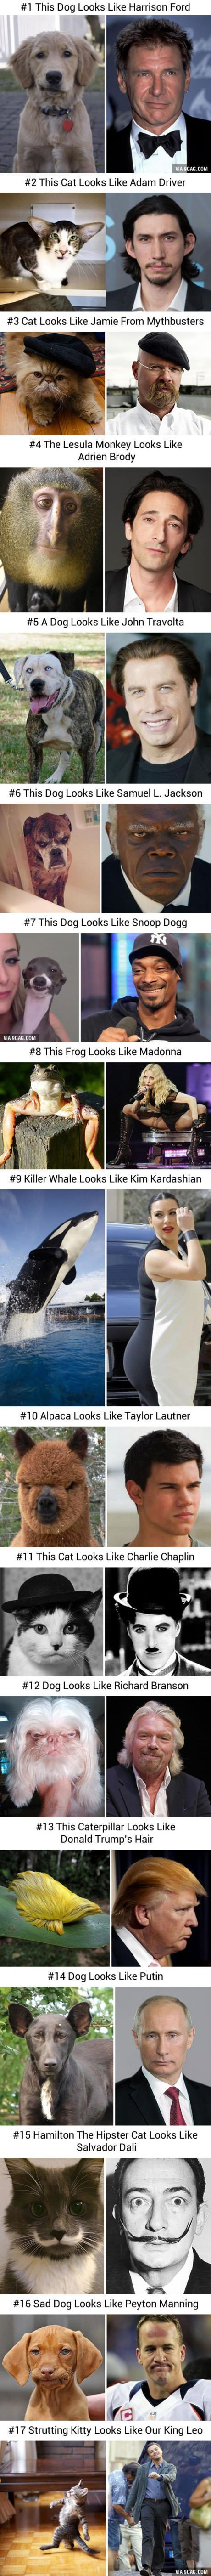 17 Animals That Look Like Celebrities And Famous People